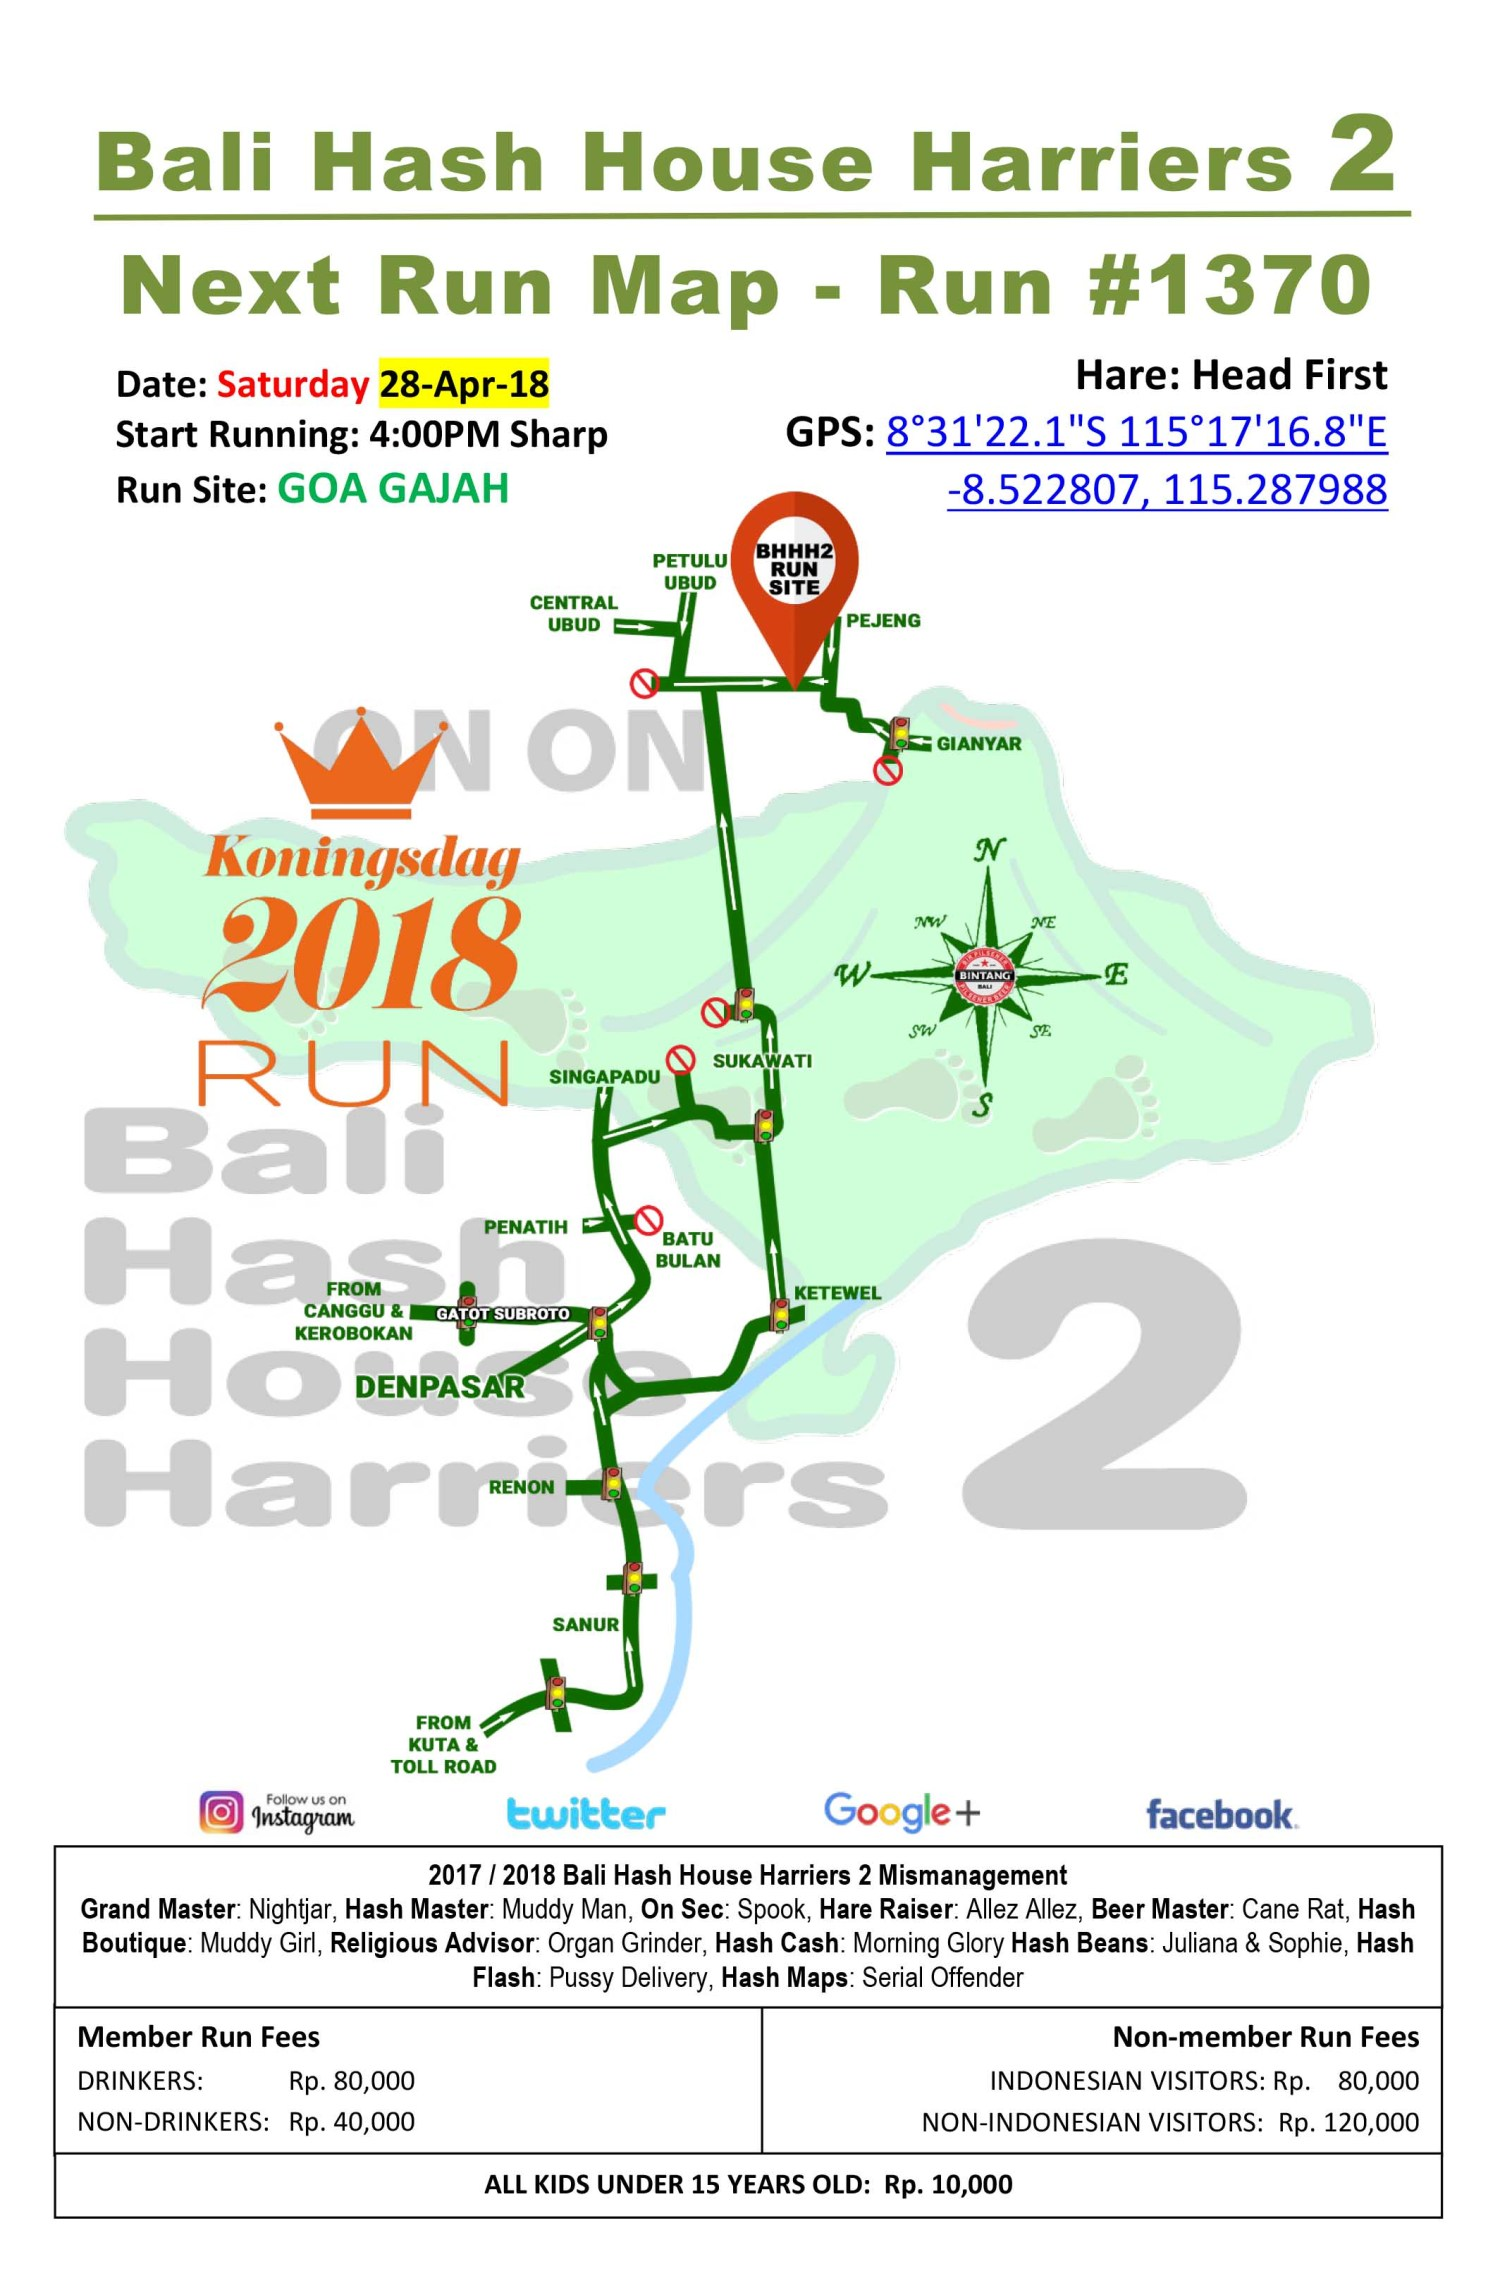 Bali Hash House Harriers 2 BHHH2 Next Run Map #1370 Goa Gajah Saturday 28-Apr-18